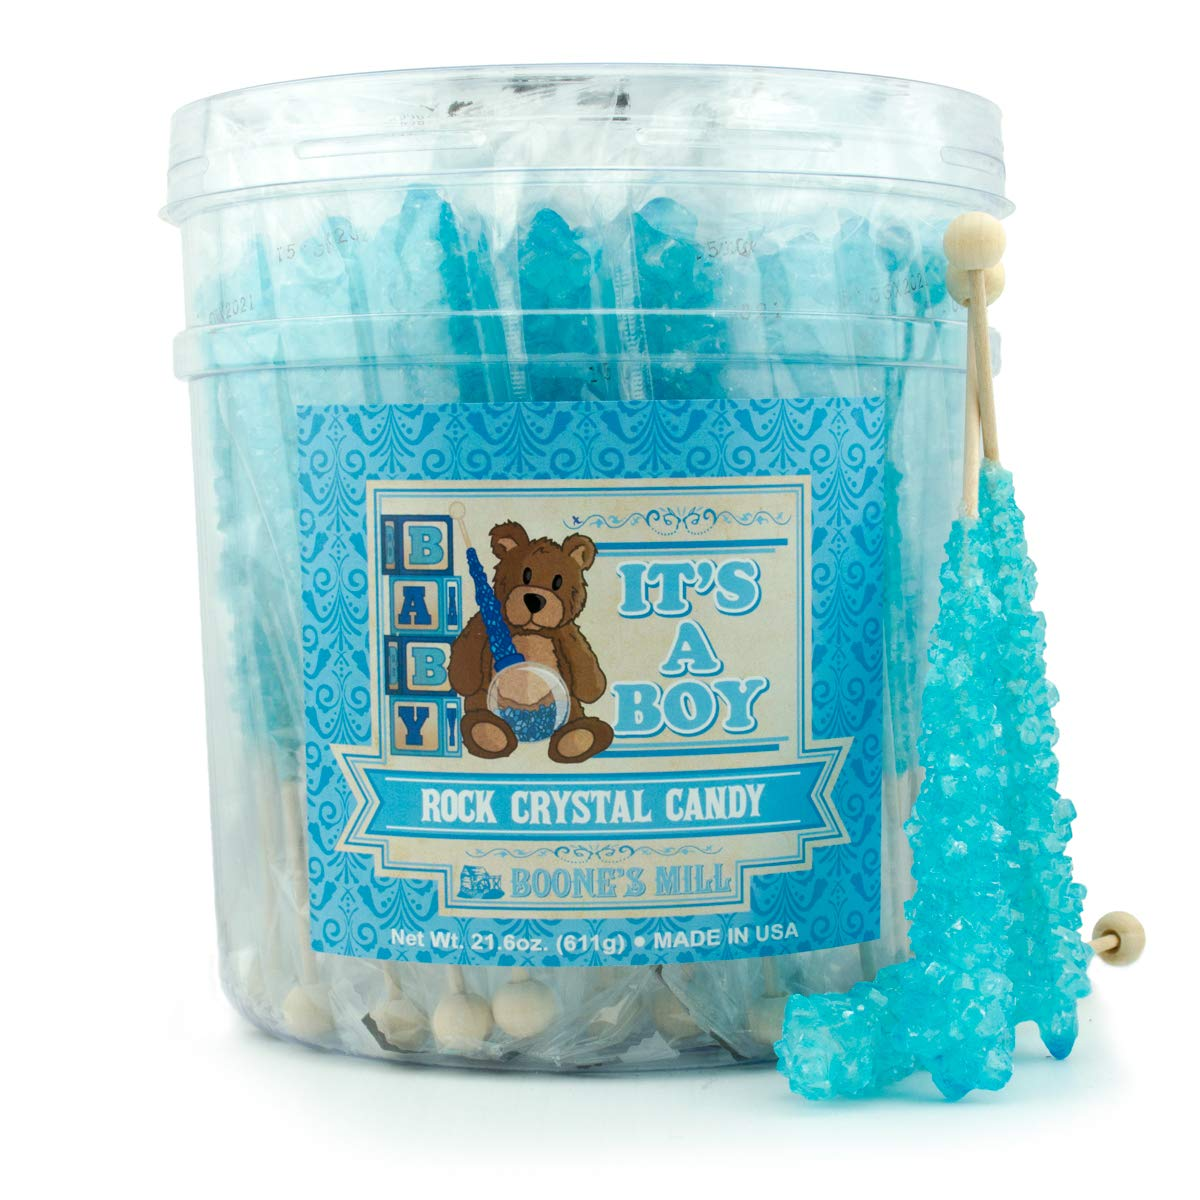 Gender Reveal Rock Crystal Candy Sticks | It's A Boy! | 36 Count Blue Blueberry | Boone's Mill